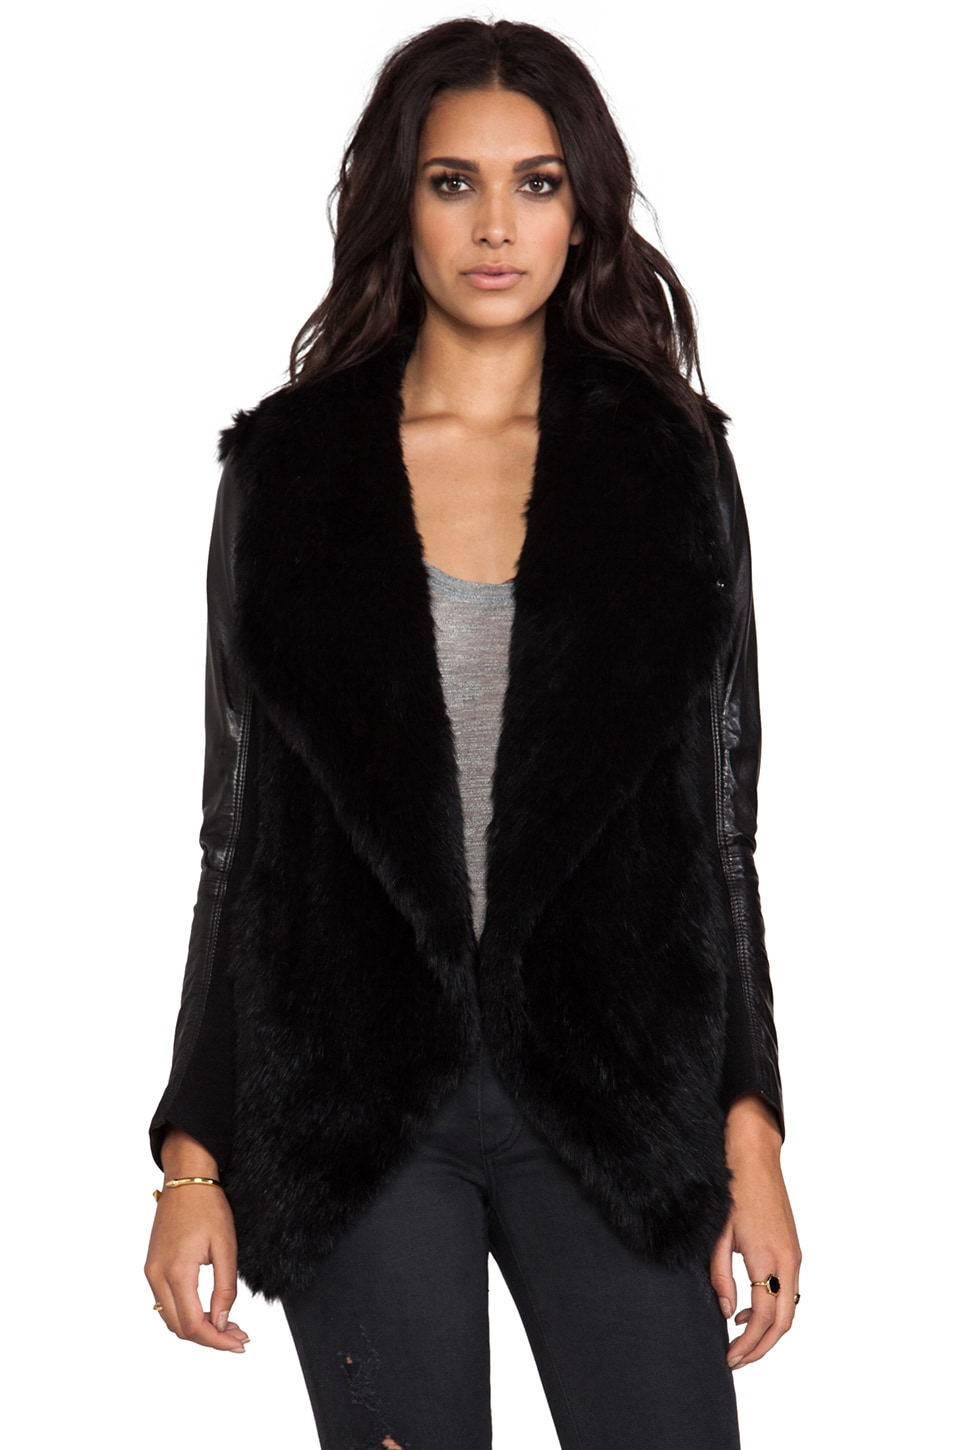 June Knit Fur Jacket With Leather Sleeves in Black